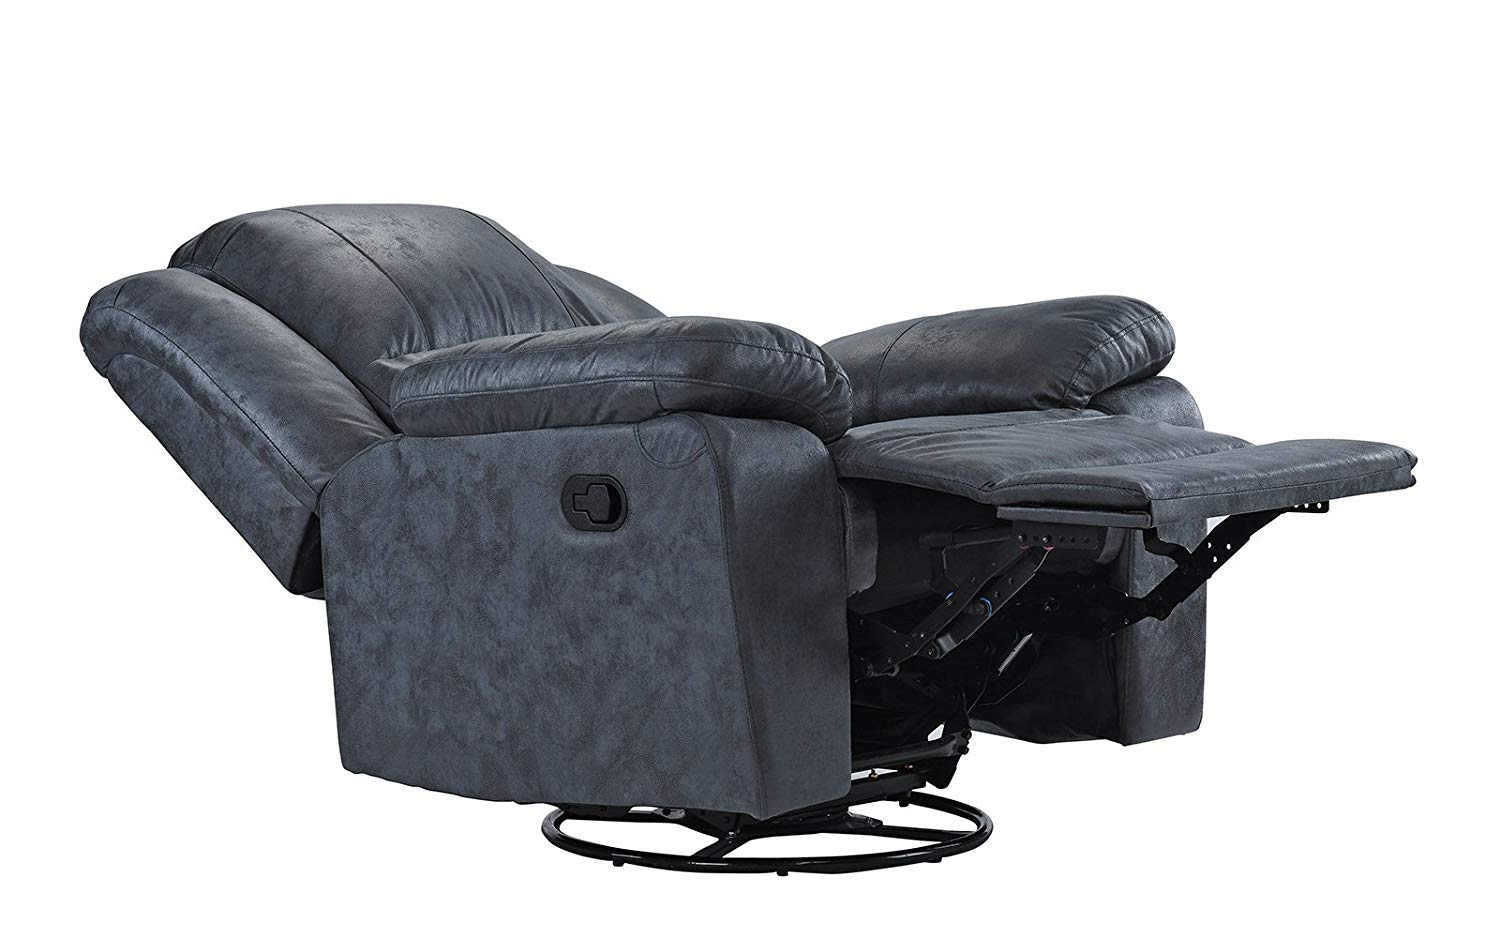 How To Clean A Leather Recliner 2020